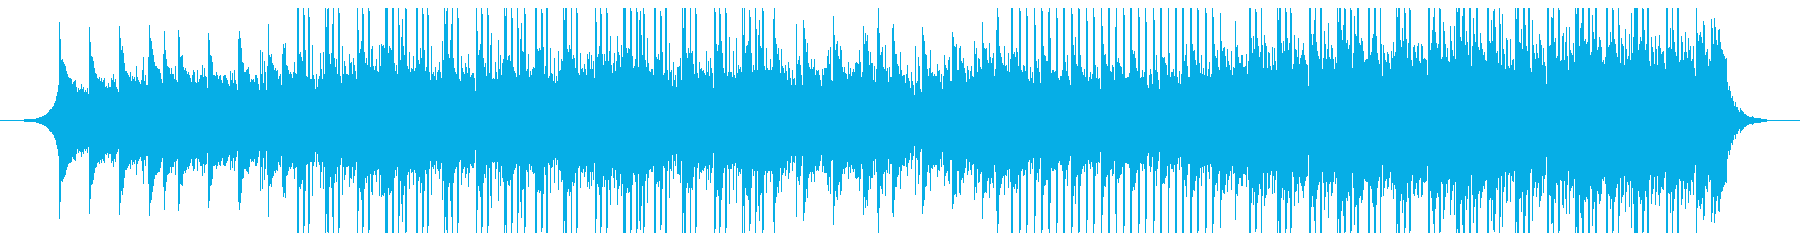 Digital technology's reproduced waveform